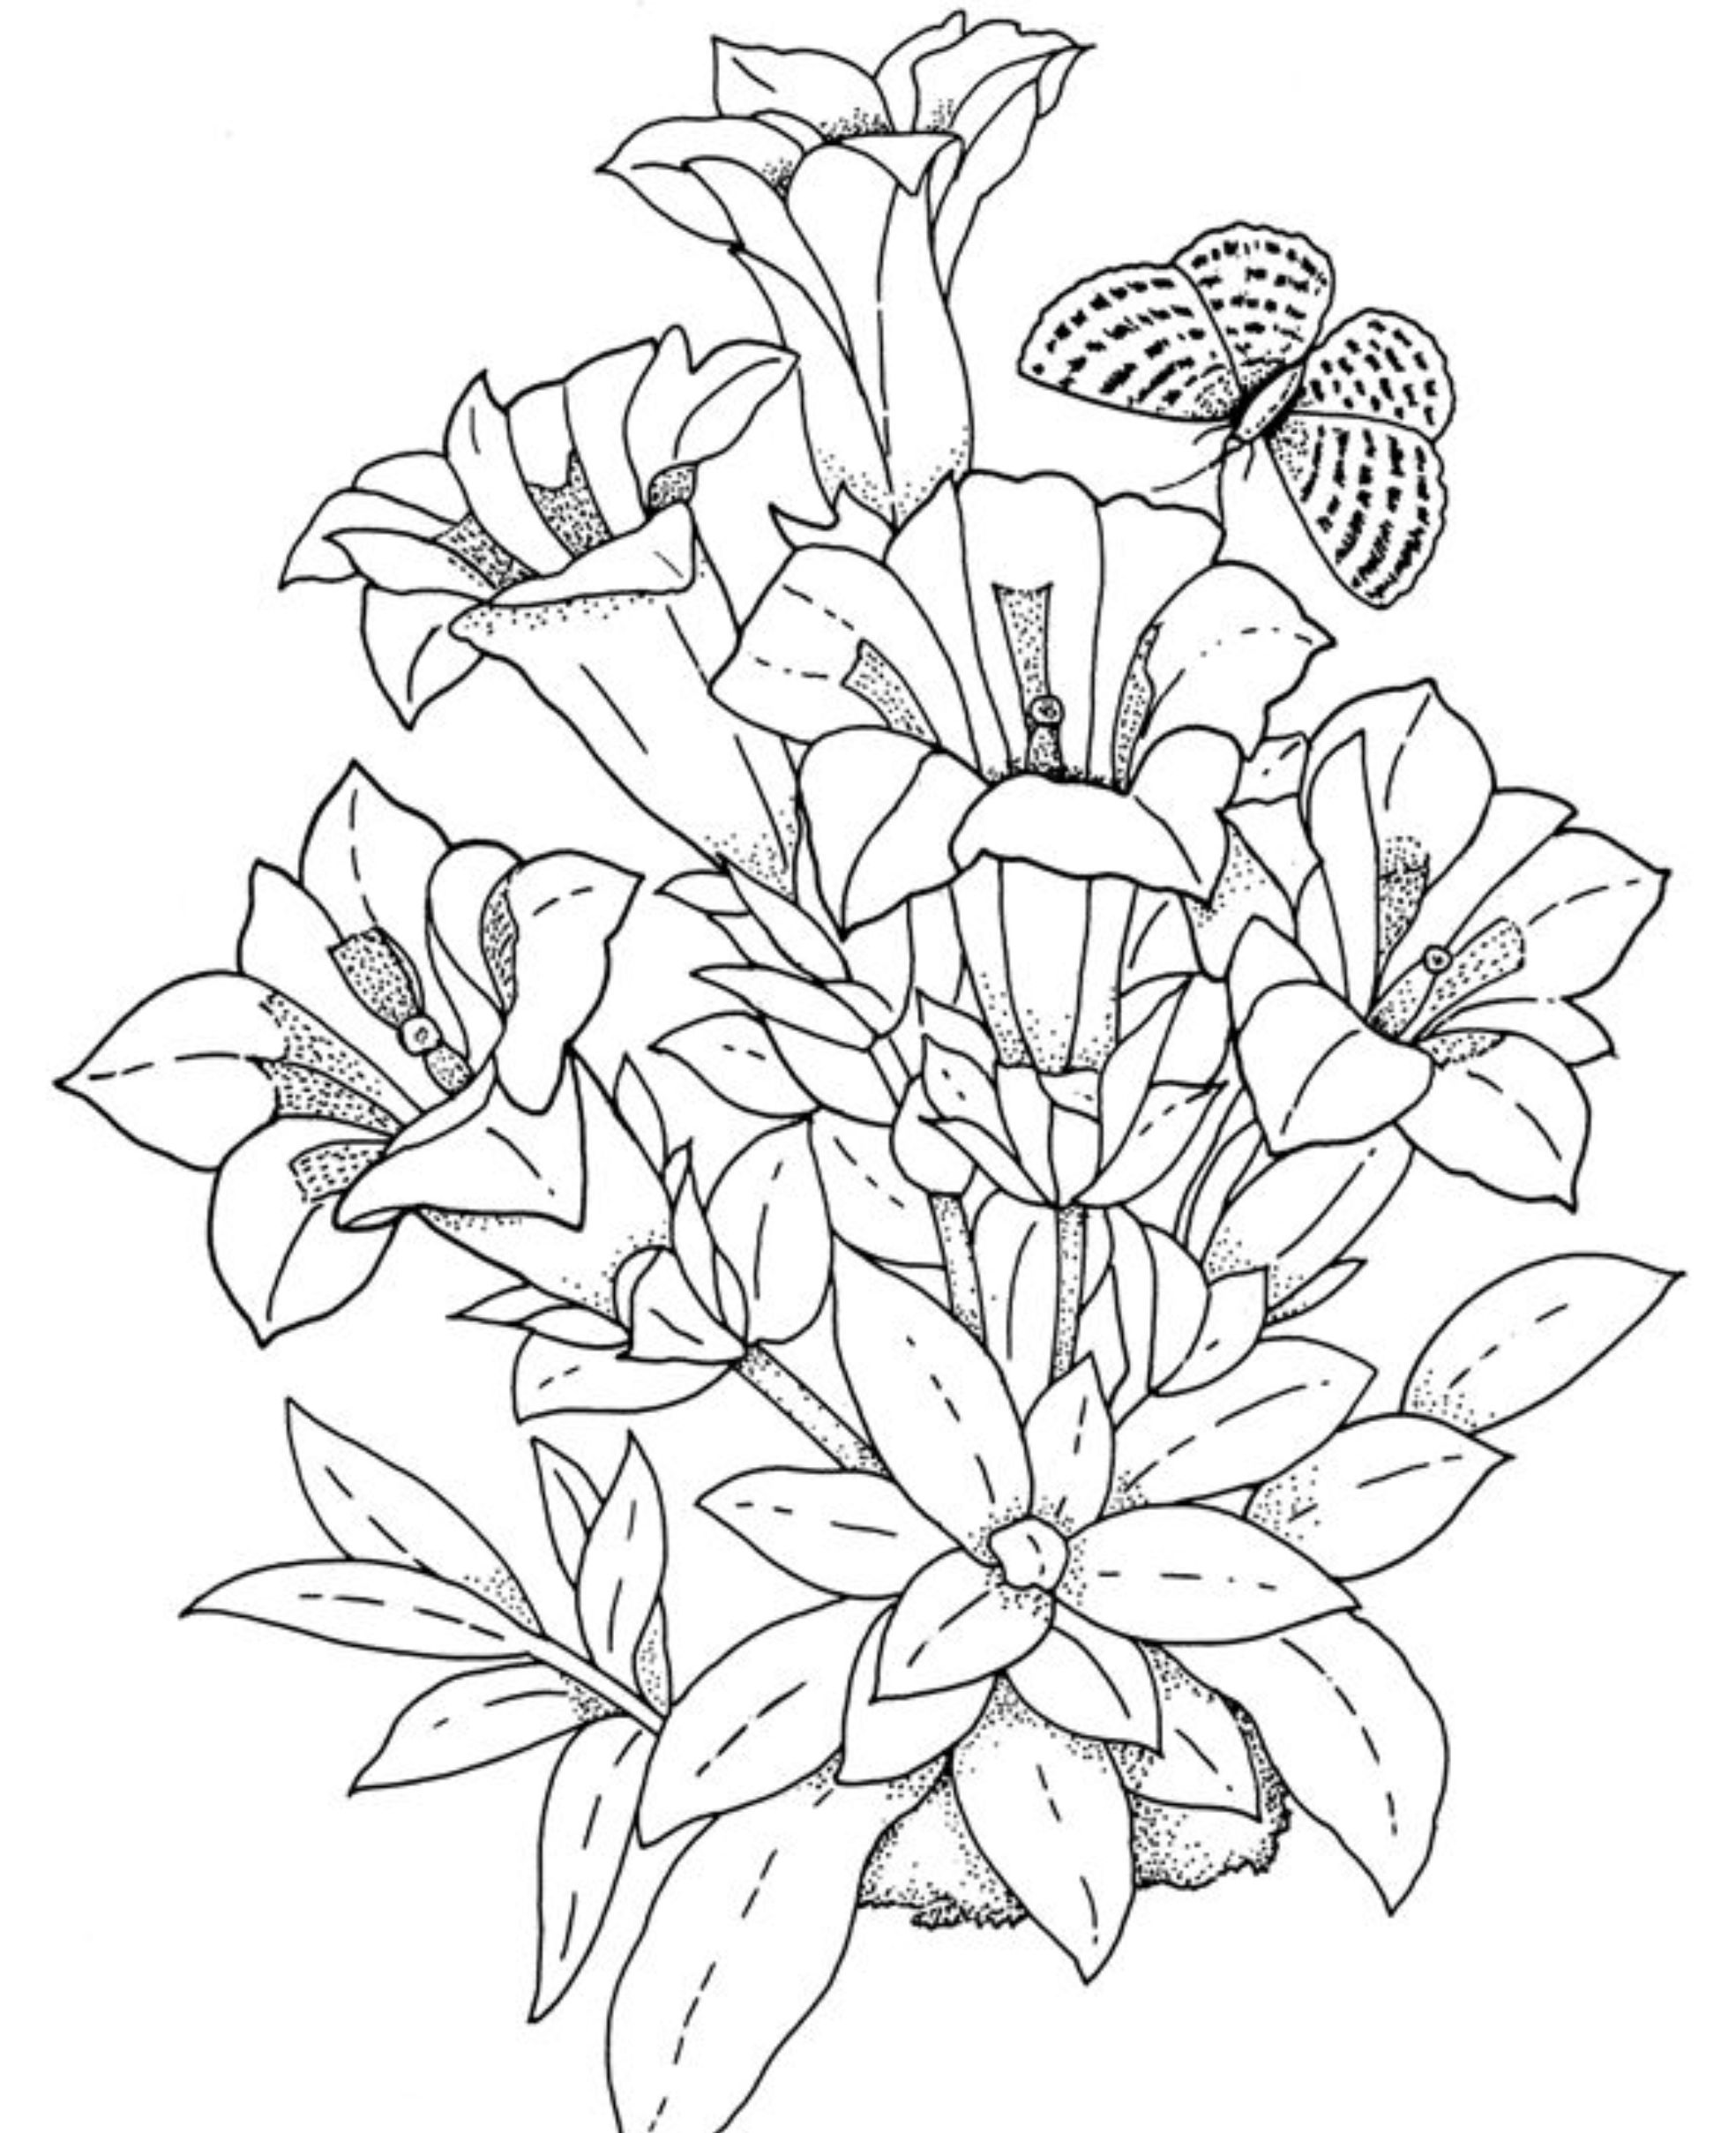 free printable flower coloring pages flower coloring pages for adults at getdrawings free flower printable coloring free pages